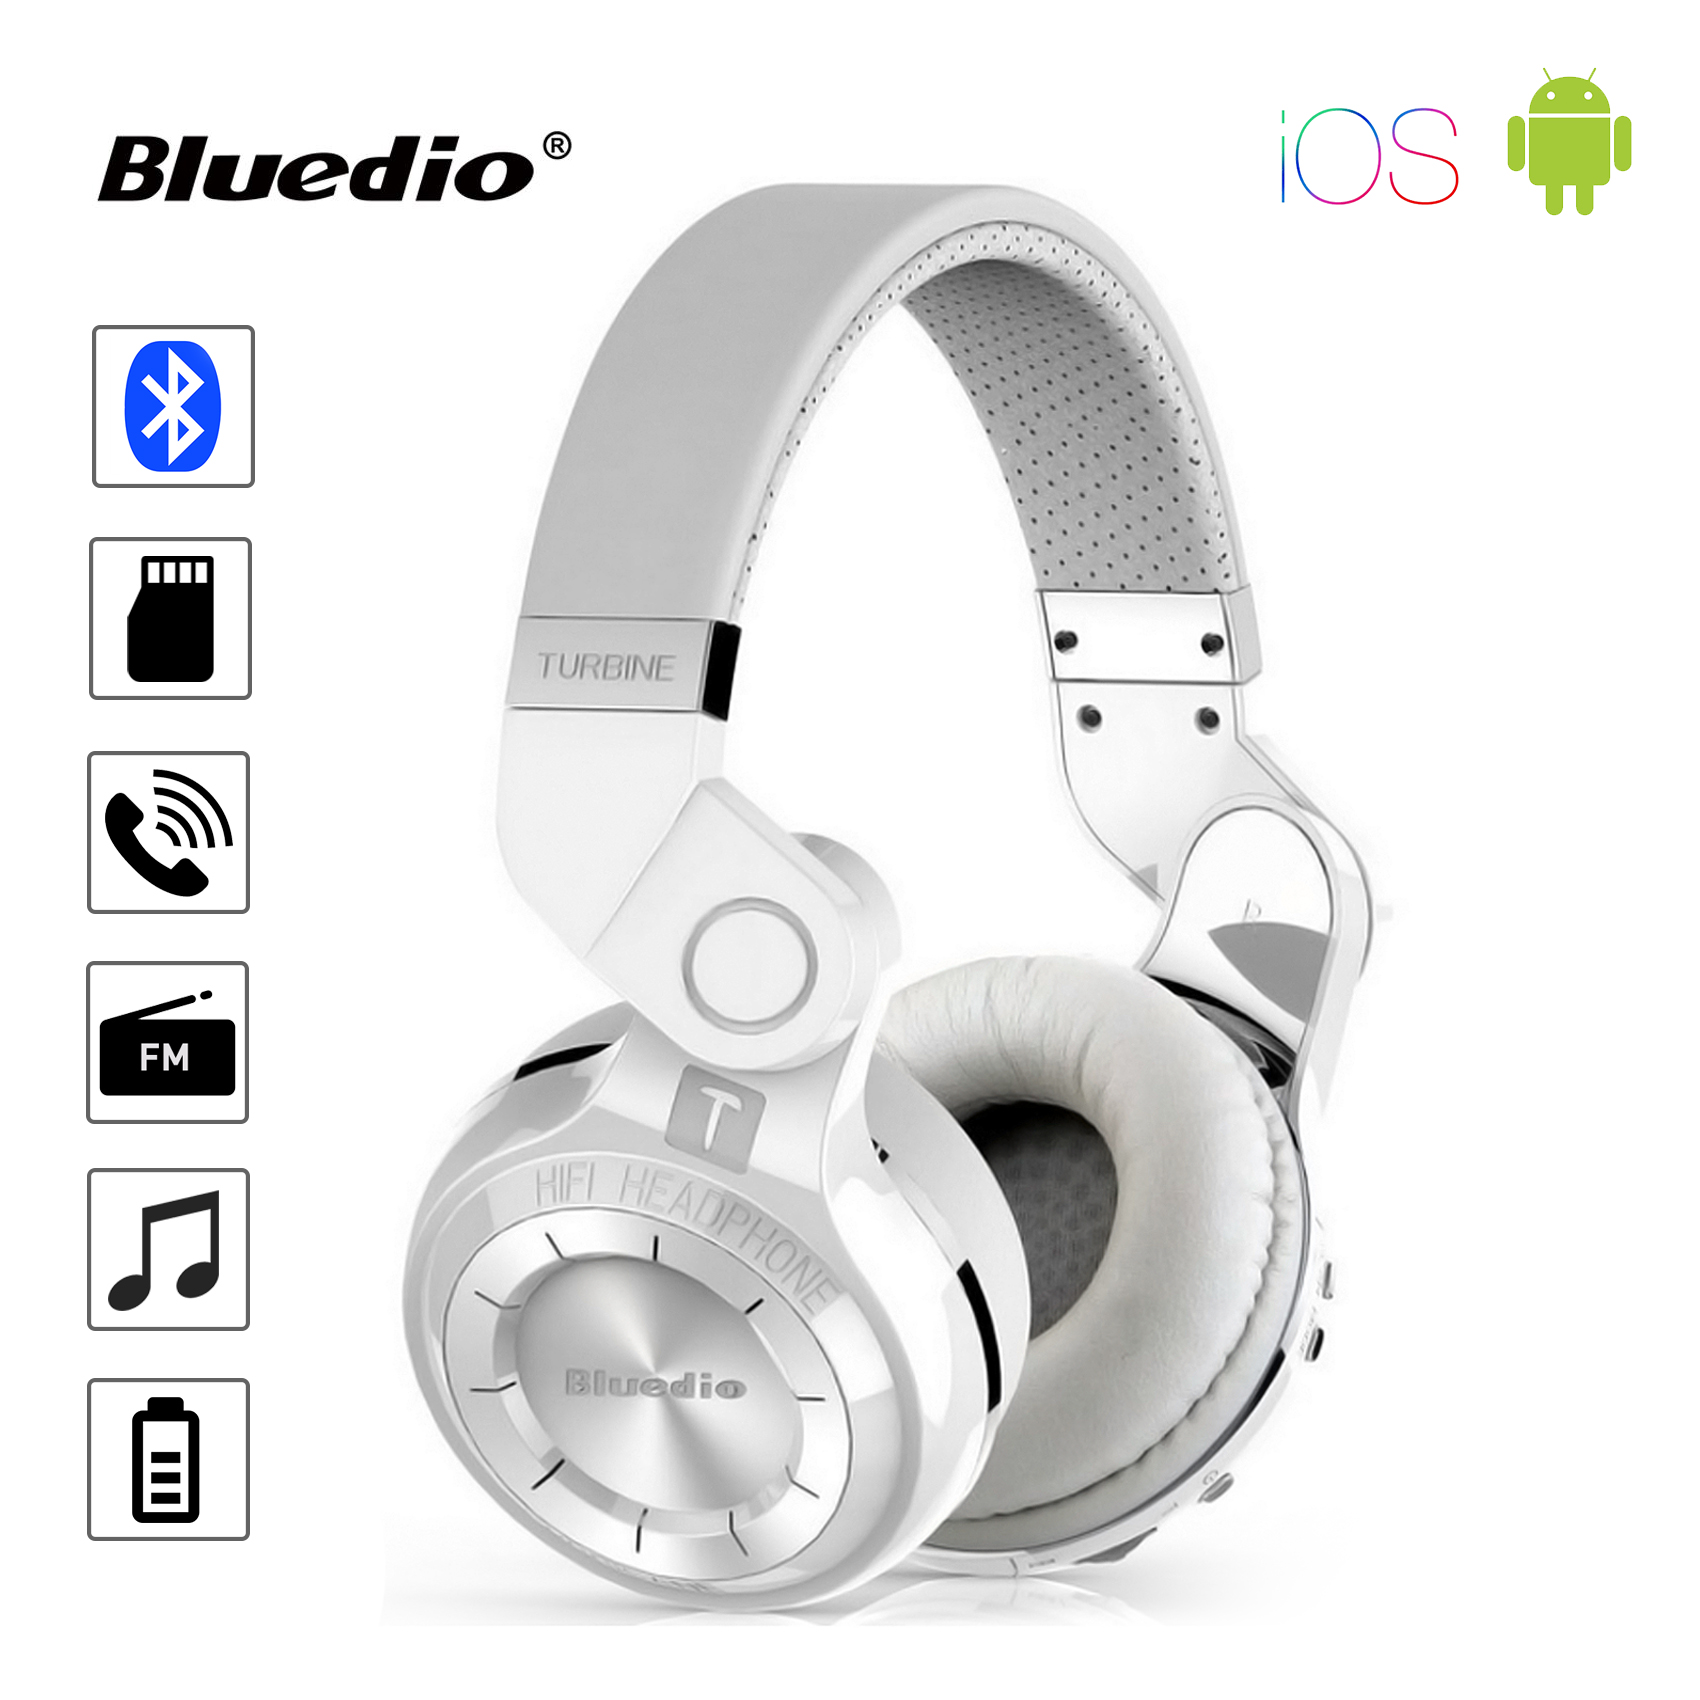 Bluedio T2+ Turbine Hurricane Bluetooth Stereo Headset - White